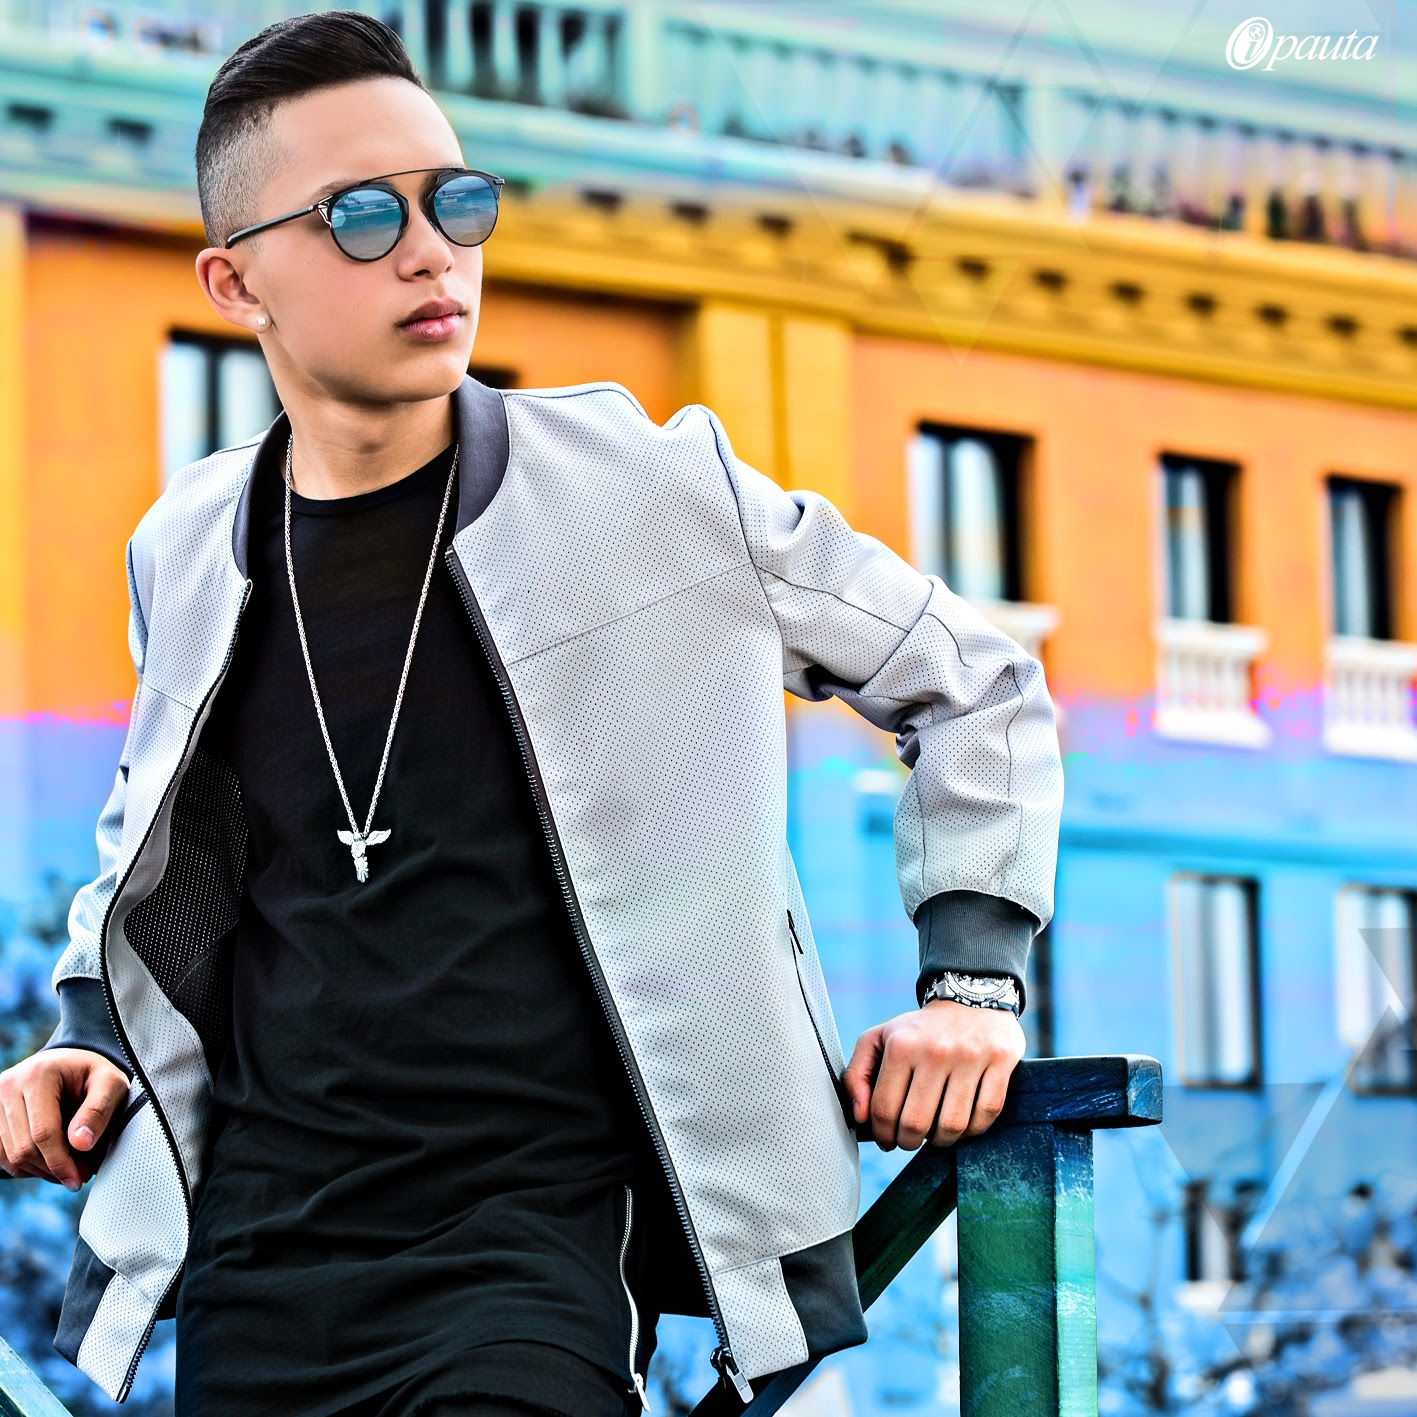 Tomas The Latin Boy noticias artista revelacion ipauta 2016 tebanmusic cali colombia aventira maluma